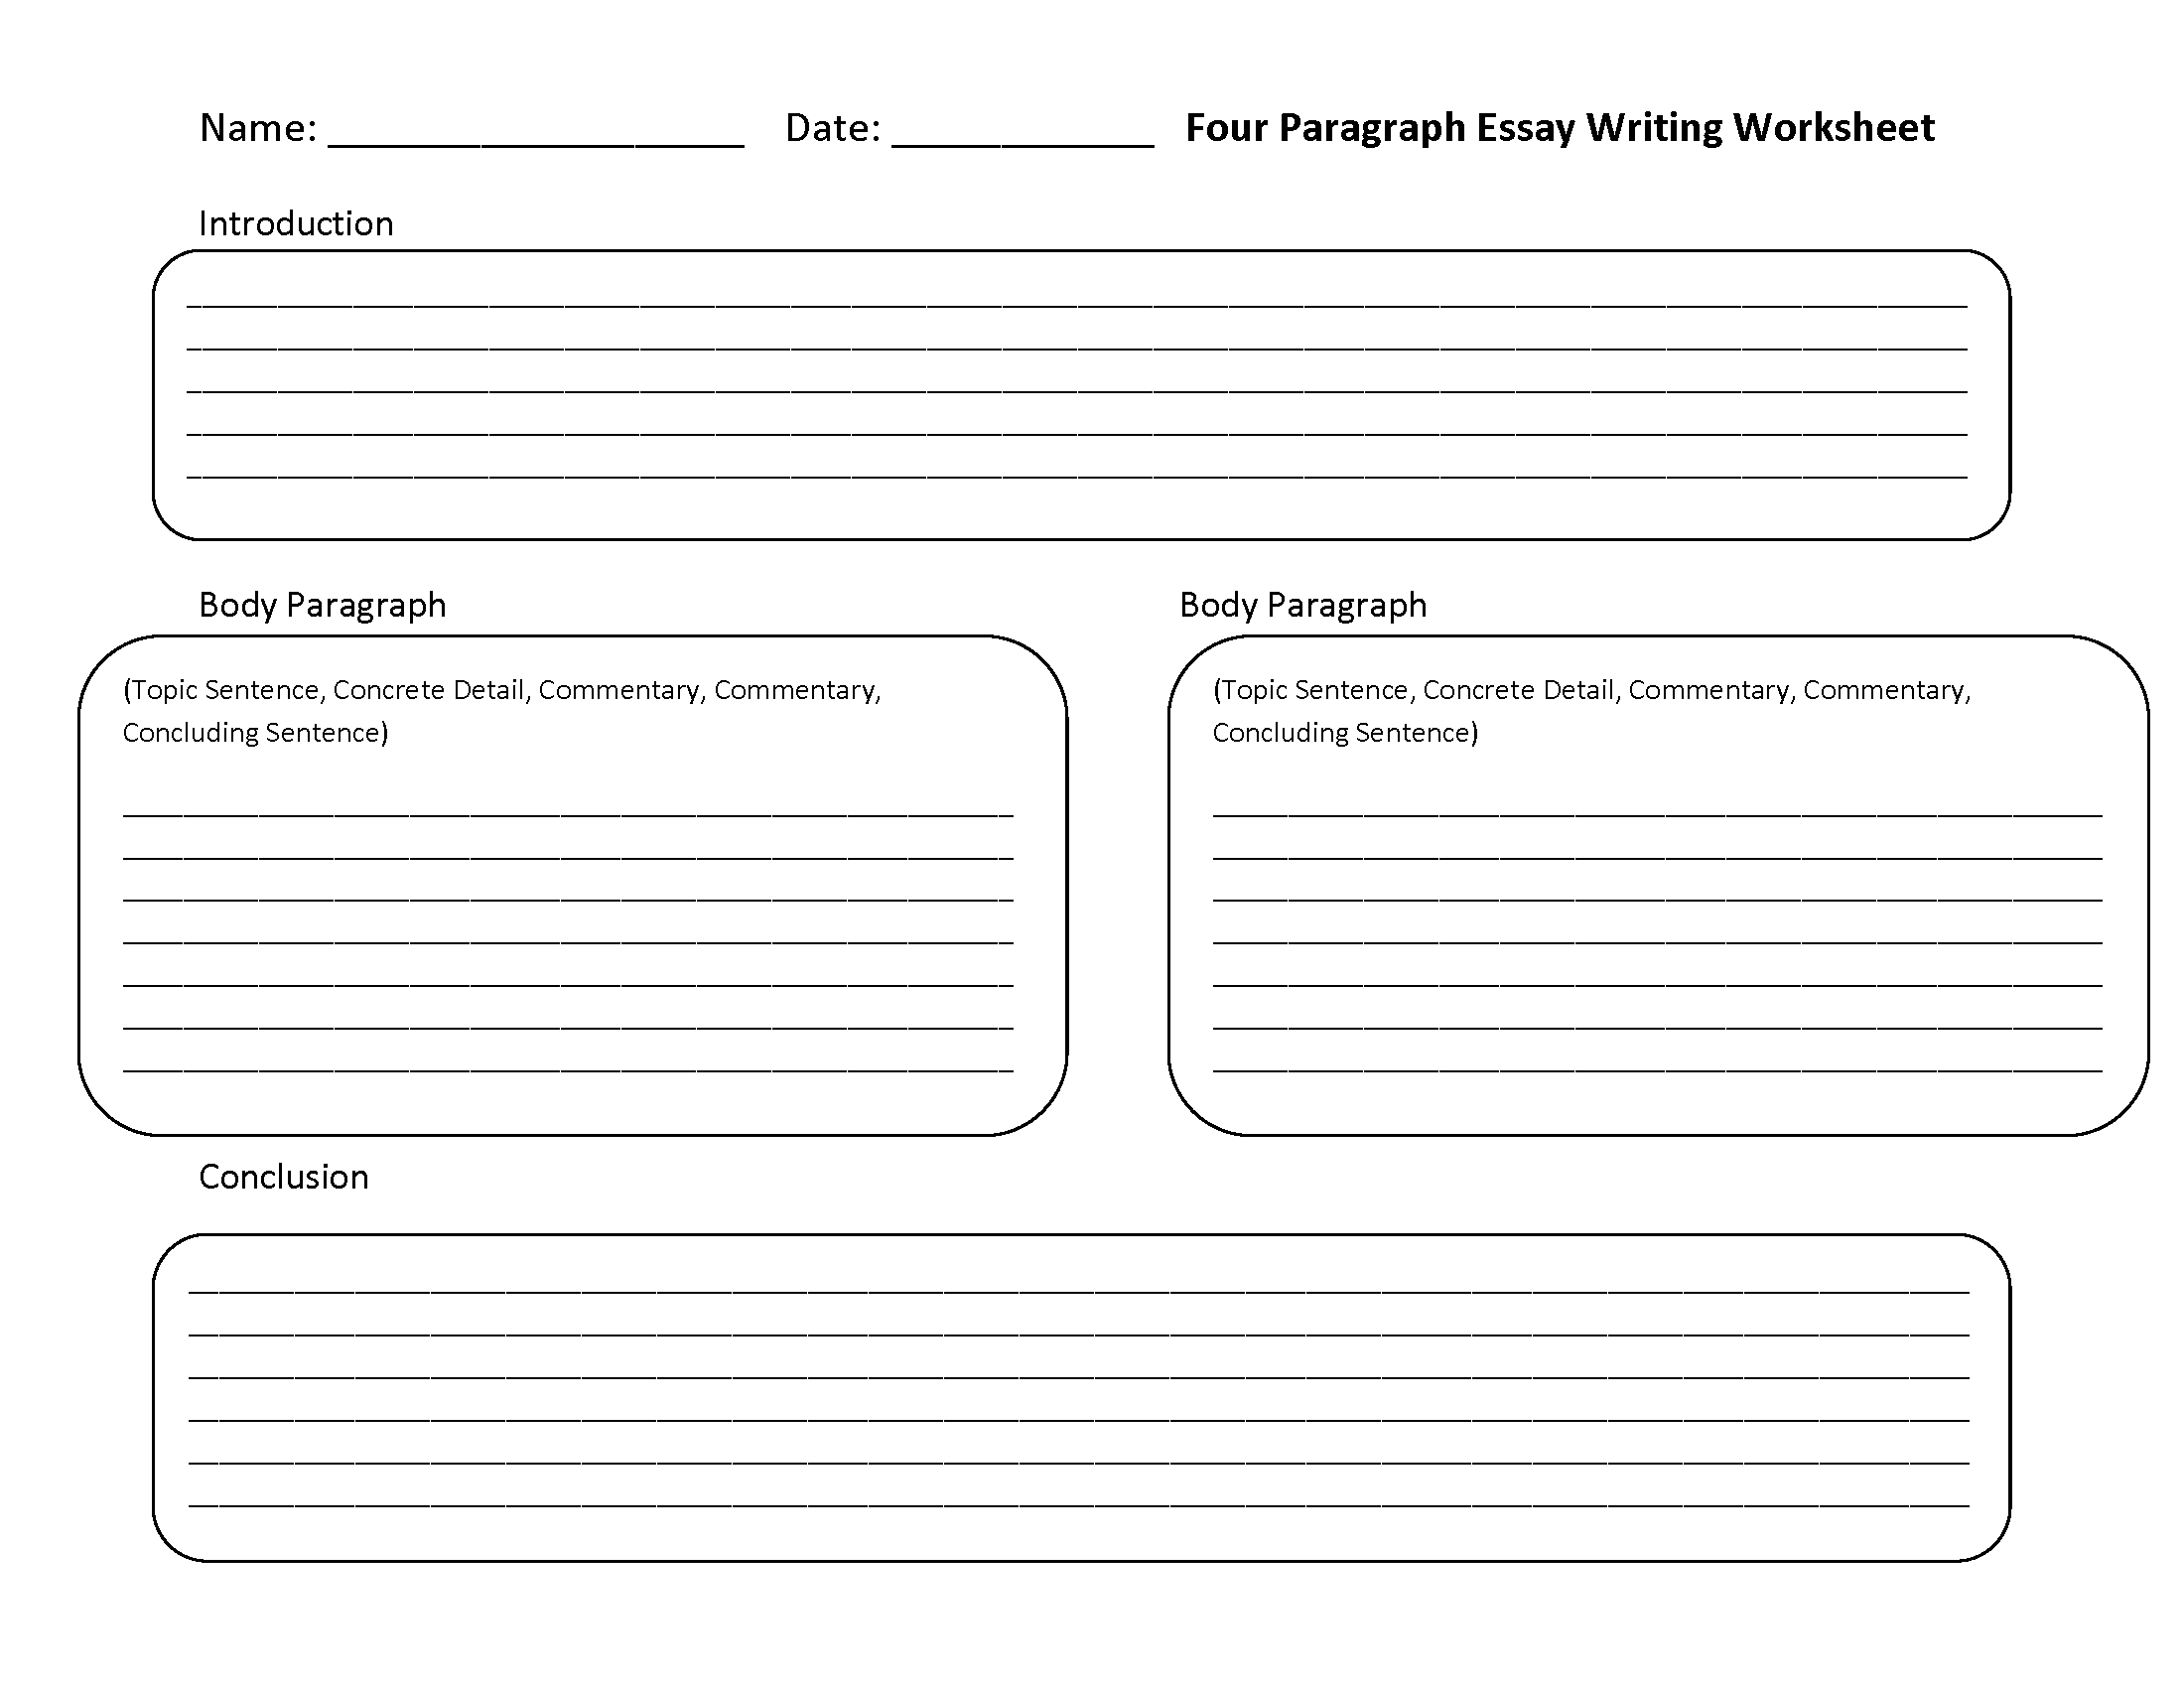 writing worksheets | essay writing worksheets